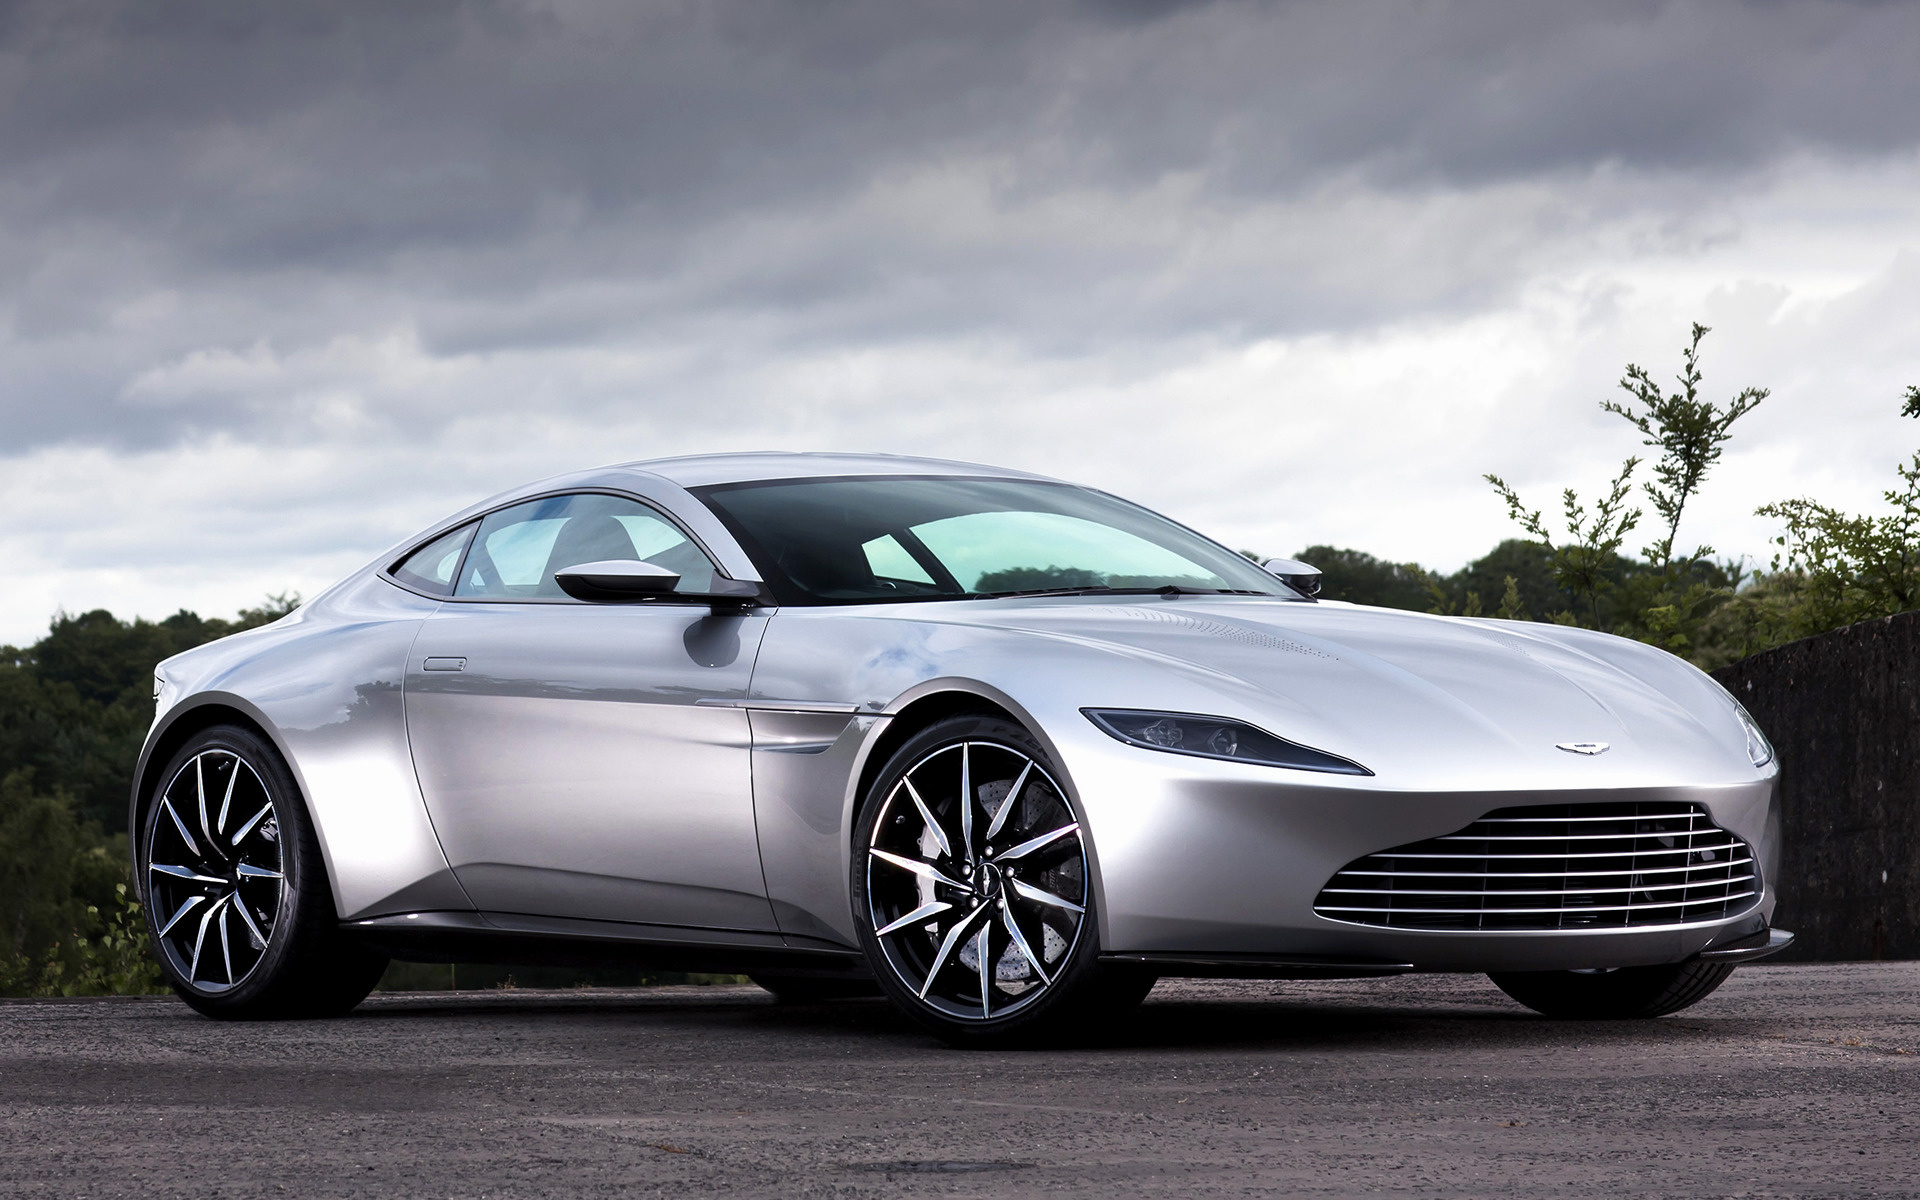 Aston Martin DB10 (2015) Wallpapers and HD Images - Car Pixel